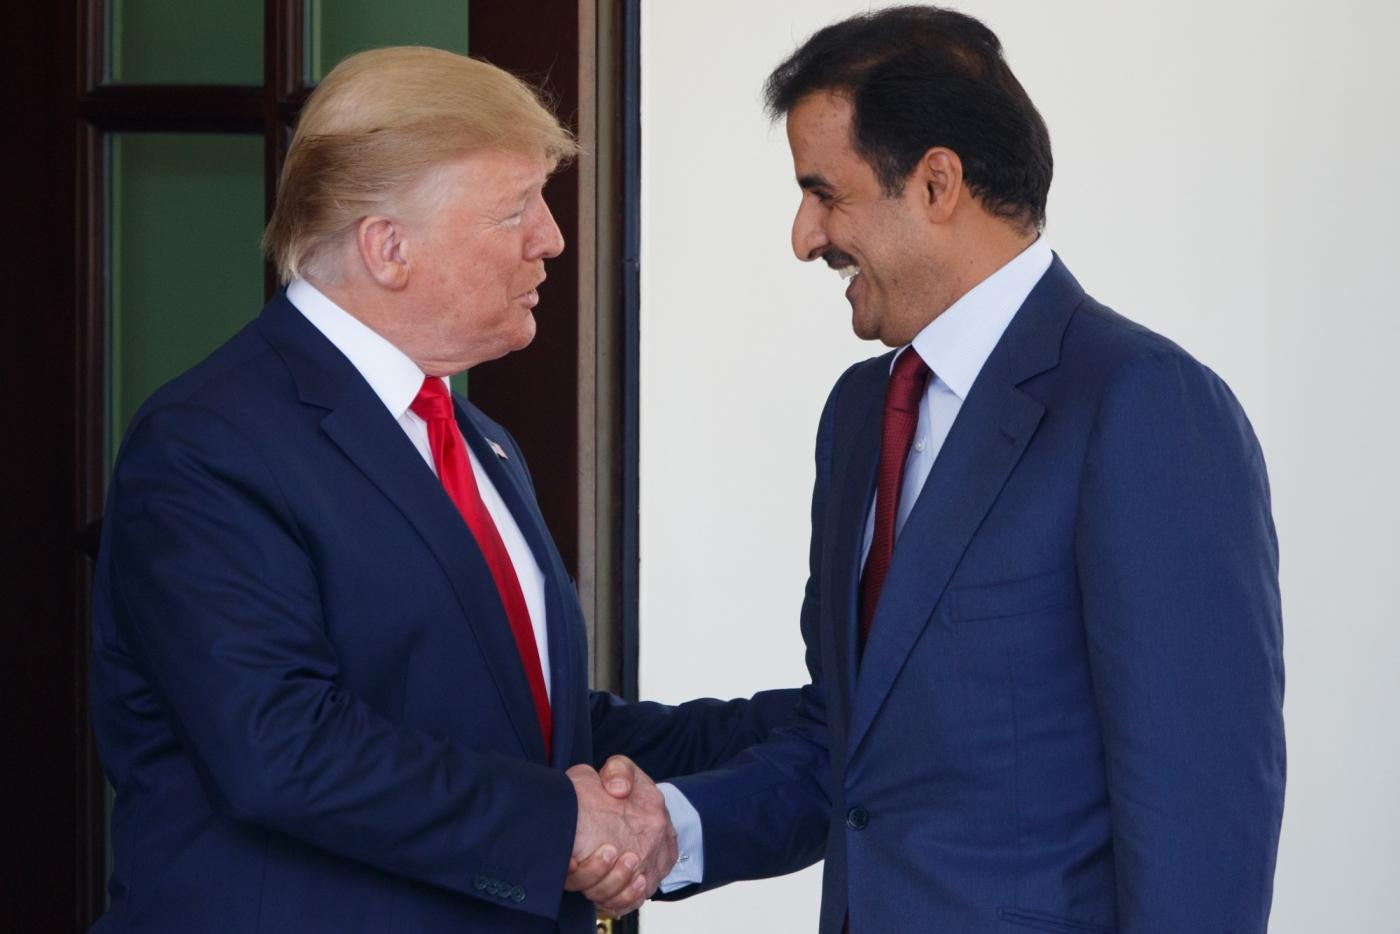 Washington, July 10, 2019 (Xinhua) -- U.S. President Donald Trump (L) welcomes Qatari Emir Sheikh Tamim Bin Hamad Al-Thani at the White House in Washington D.C., the United States, on July 9, 2019. (Xinhua/Ting Shen/IANS) by .